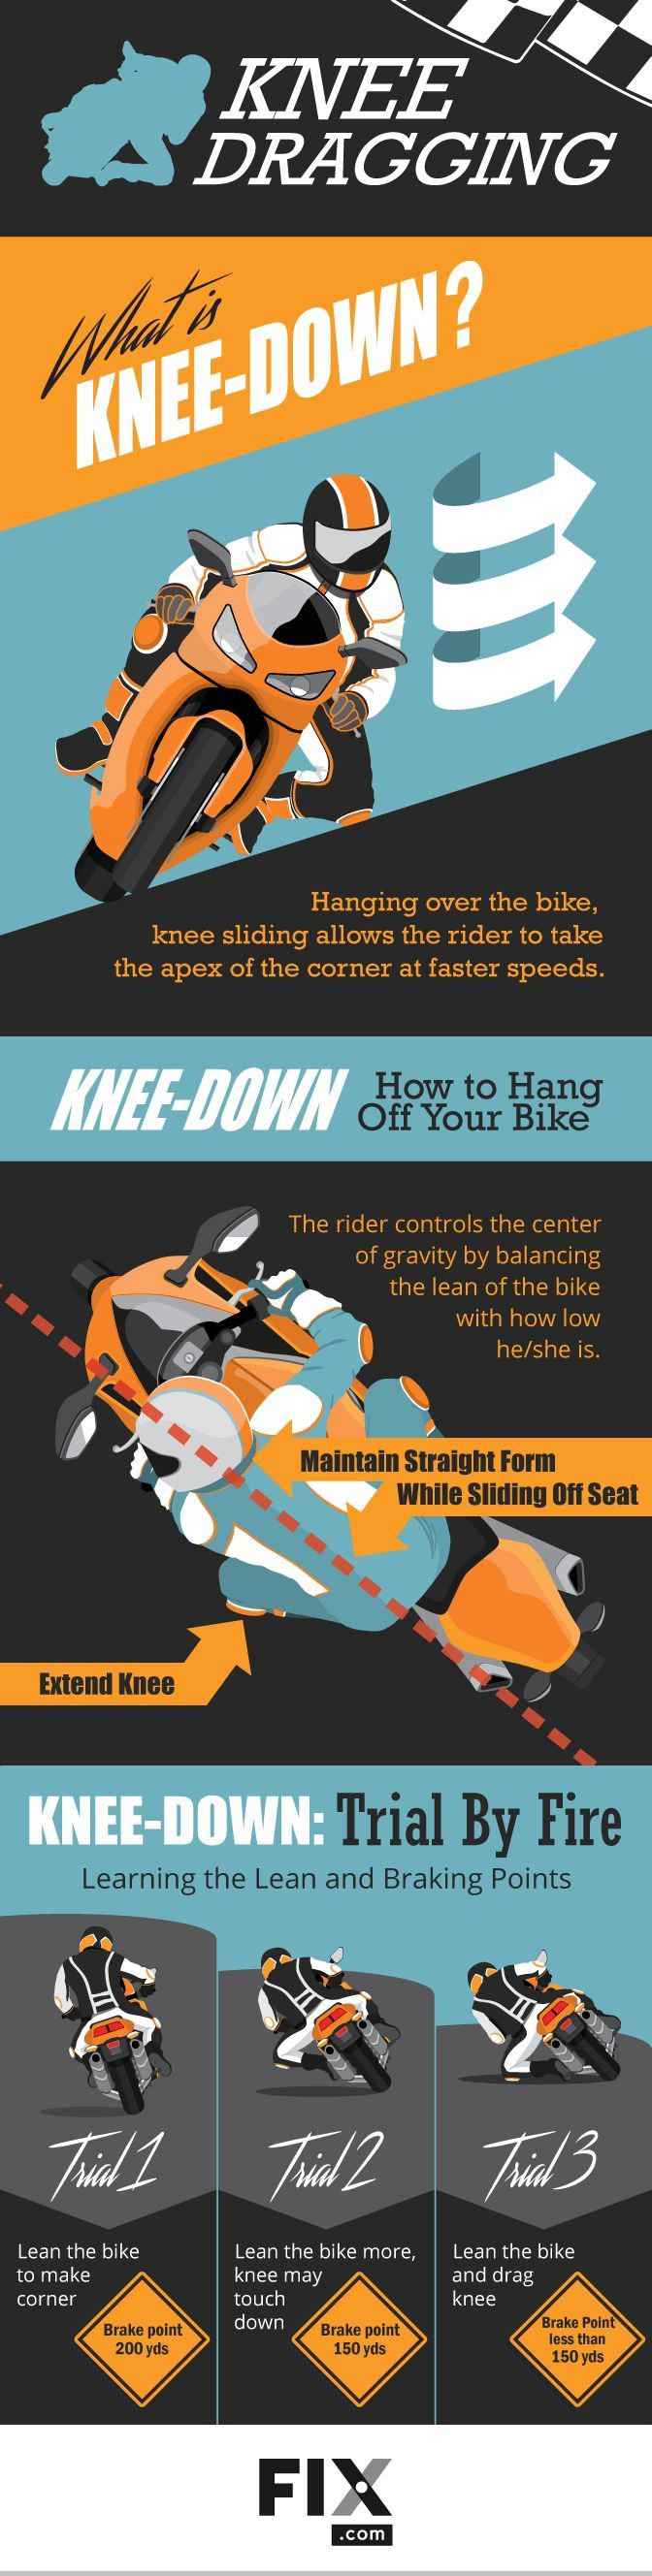 27 best Motorcycle stuff images on Pinterest | Wheels, High road and ...